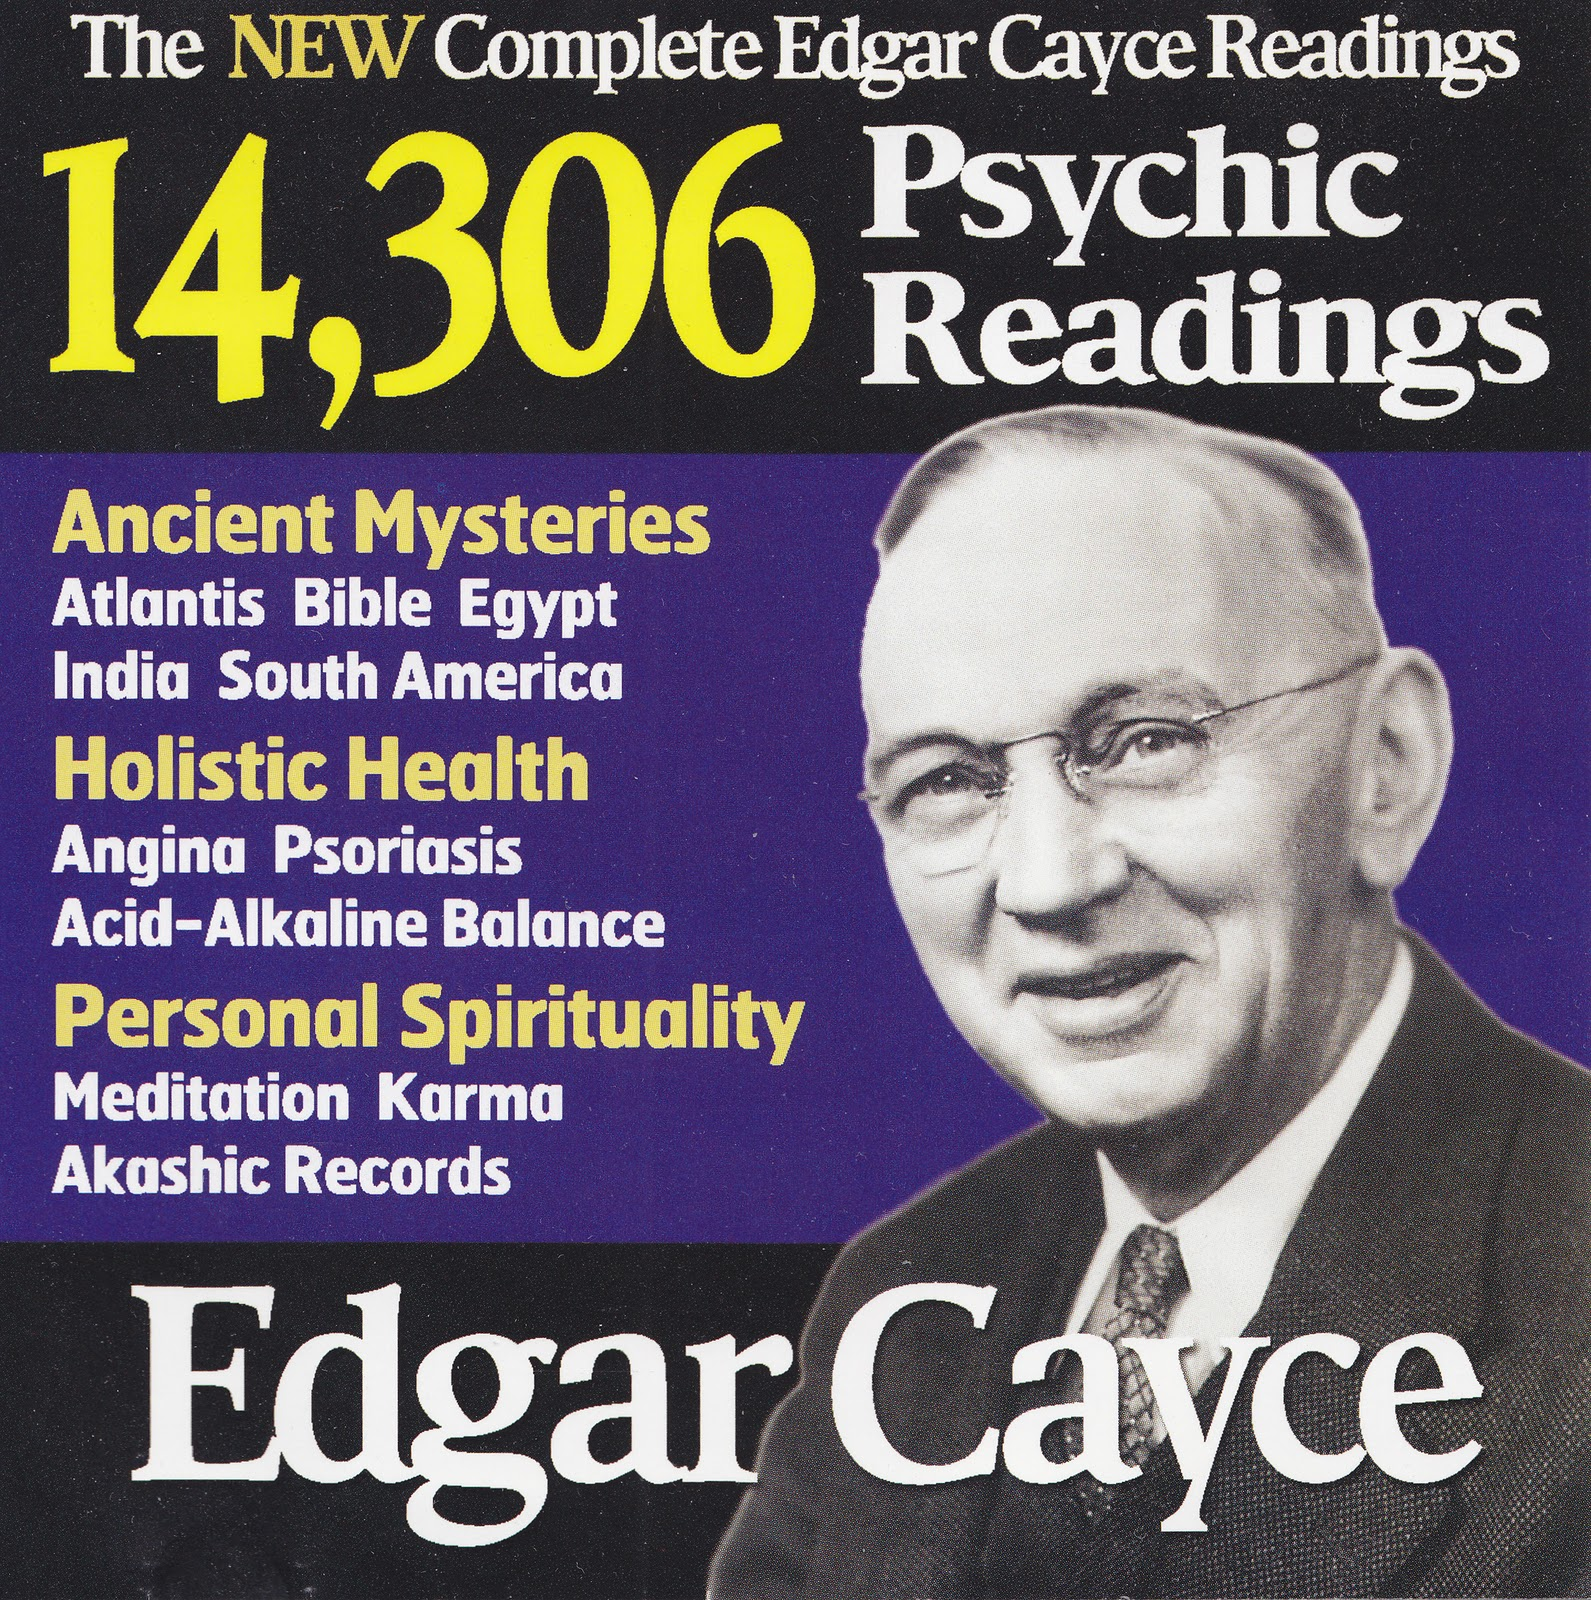 The new complete edgar cayce readings expanded version 2